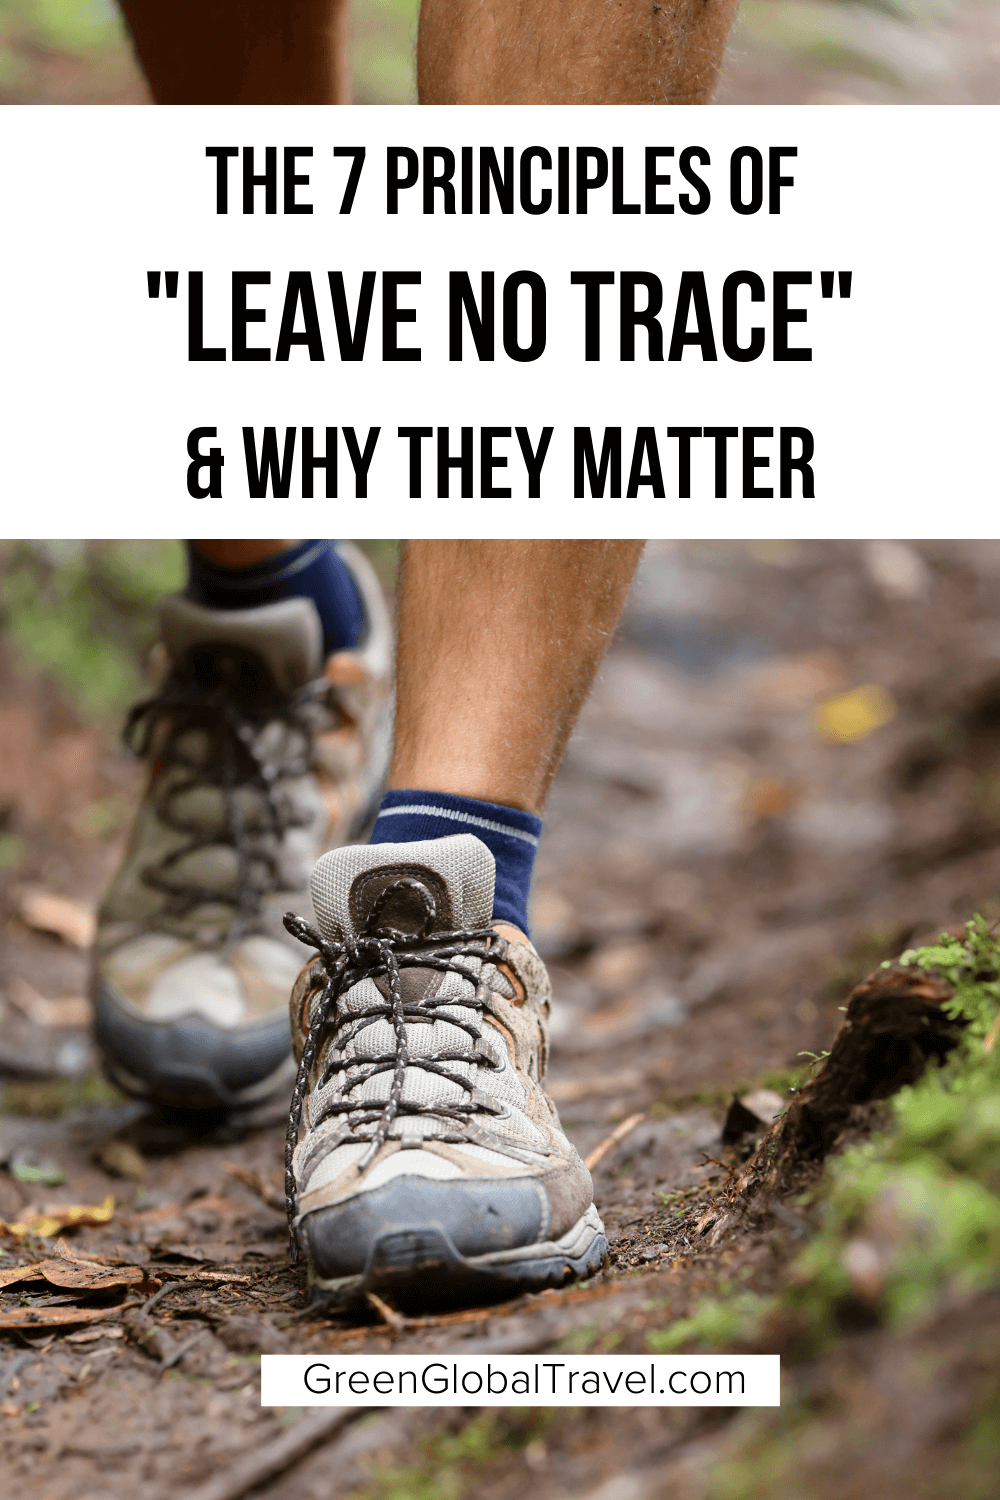 Why the 7 Principles of Leave No Trace Matter More Than Ever. Includes LNT history, what the 7 LNT principles are and; how we can be environmental stewards. | leaving no trace | environmental stewardship | responsible travel | leave no trace principle | leave no trace principles | responsible tourism | leave no trace principles for kids | lnt principles | leave no trace seven principles | stewardship of nature | environmental stewardship examples | environmental stewardship | responsible travel